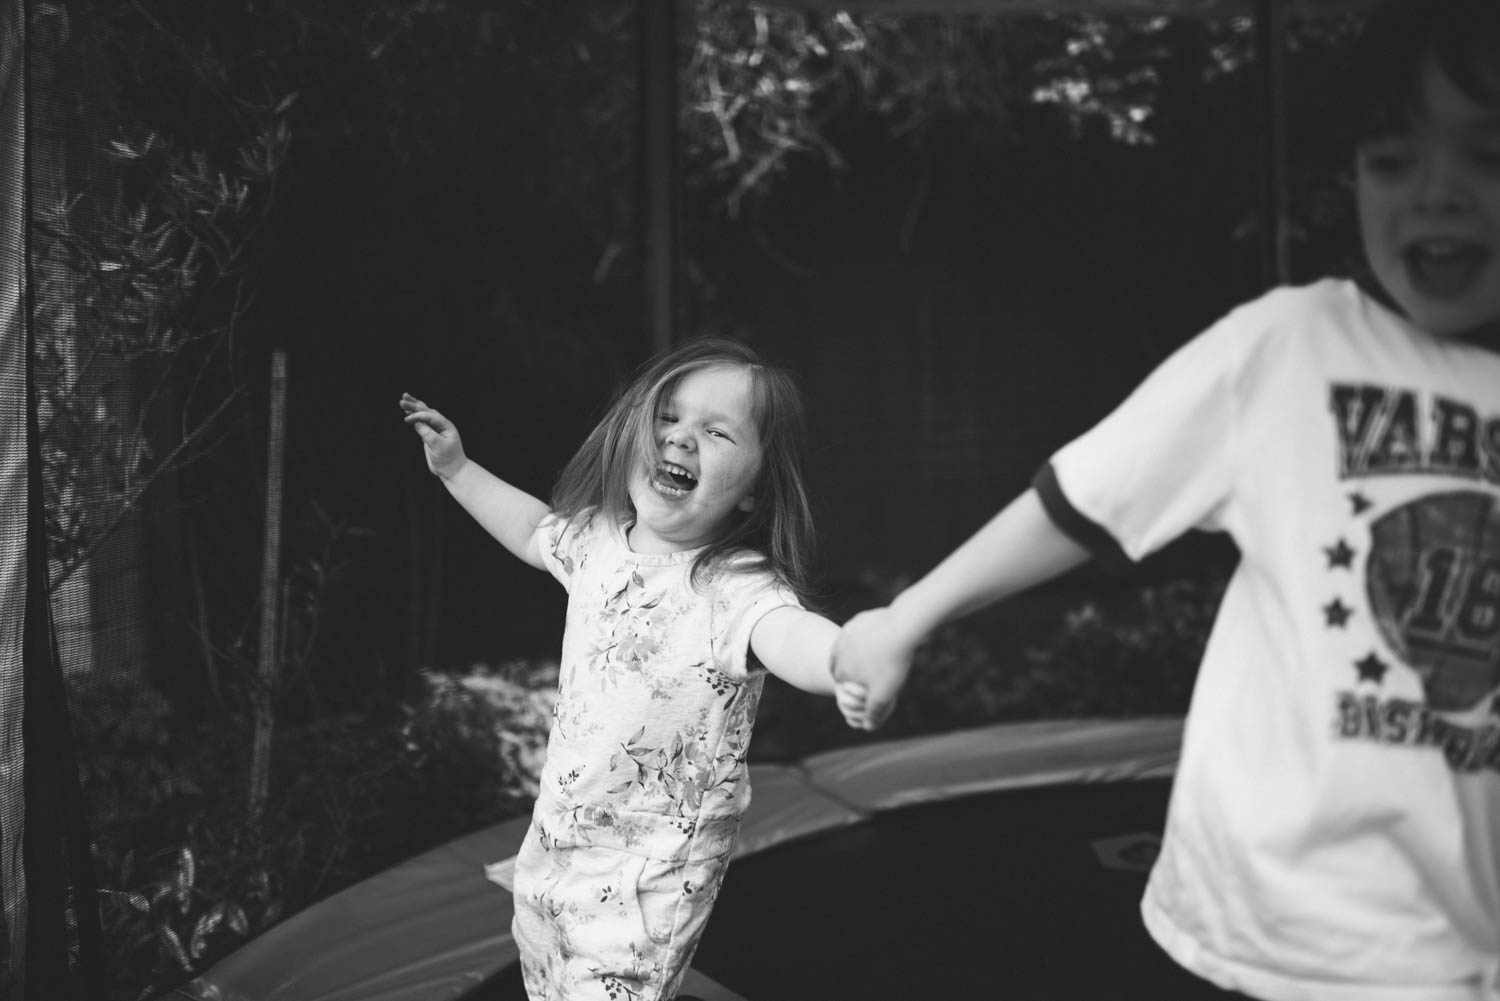 Fitzroy Melbourne Lifestyle Family Photographer | Kyra Boyer Photography | Documentary in Home Session | A Day in the Life